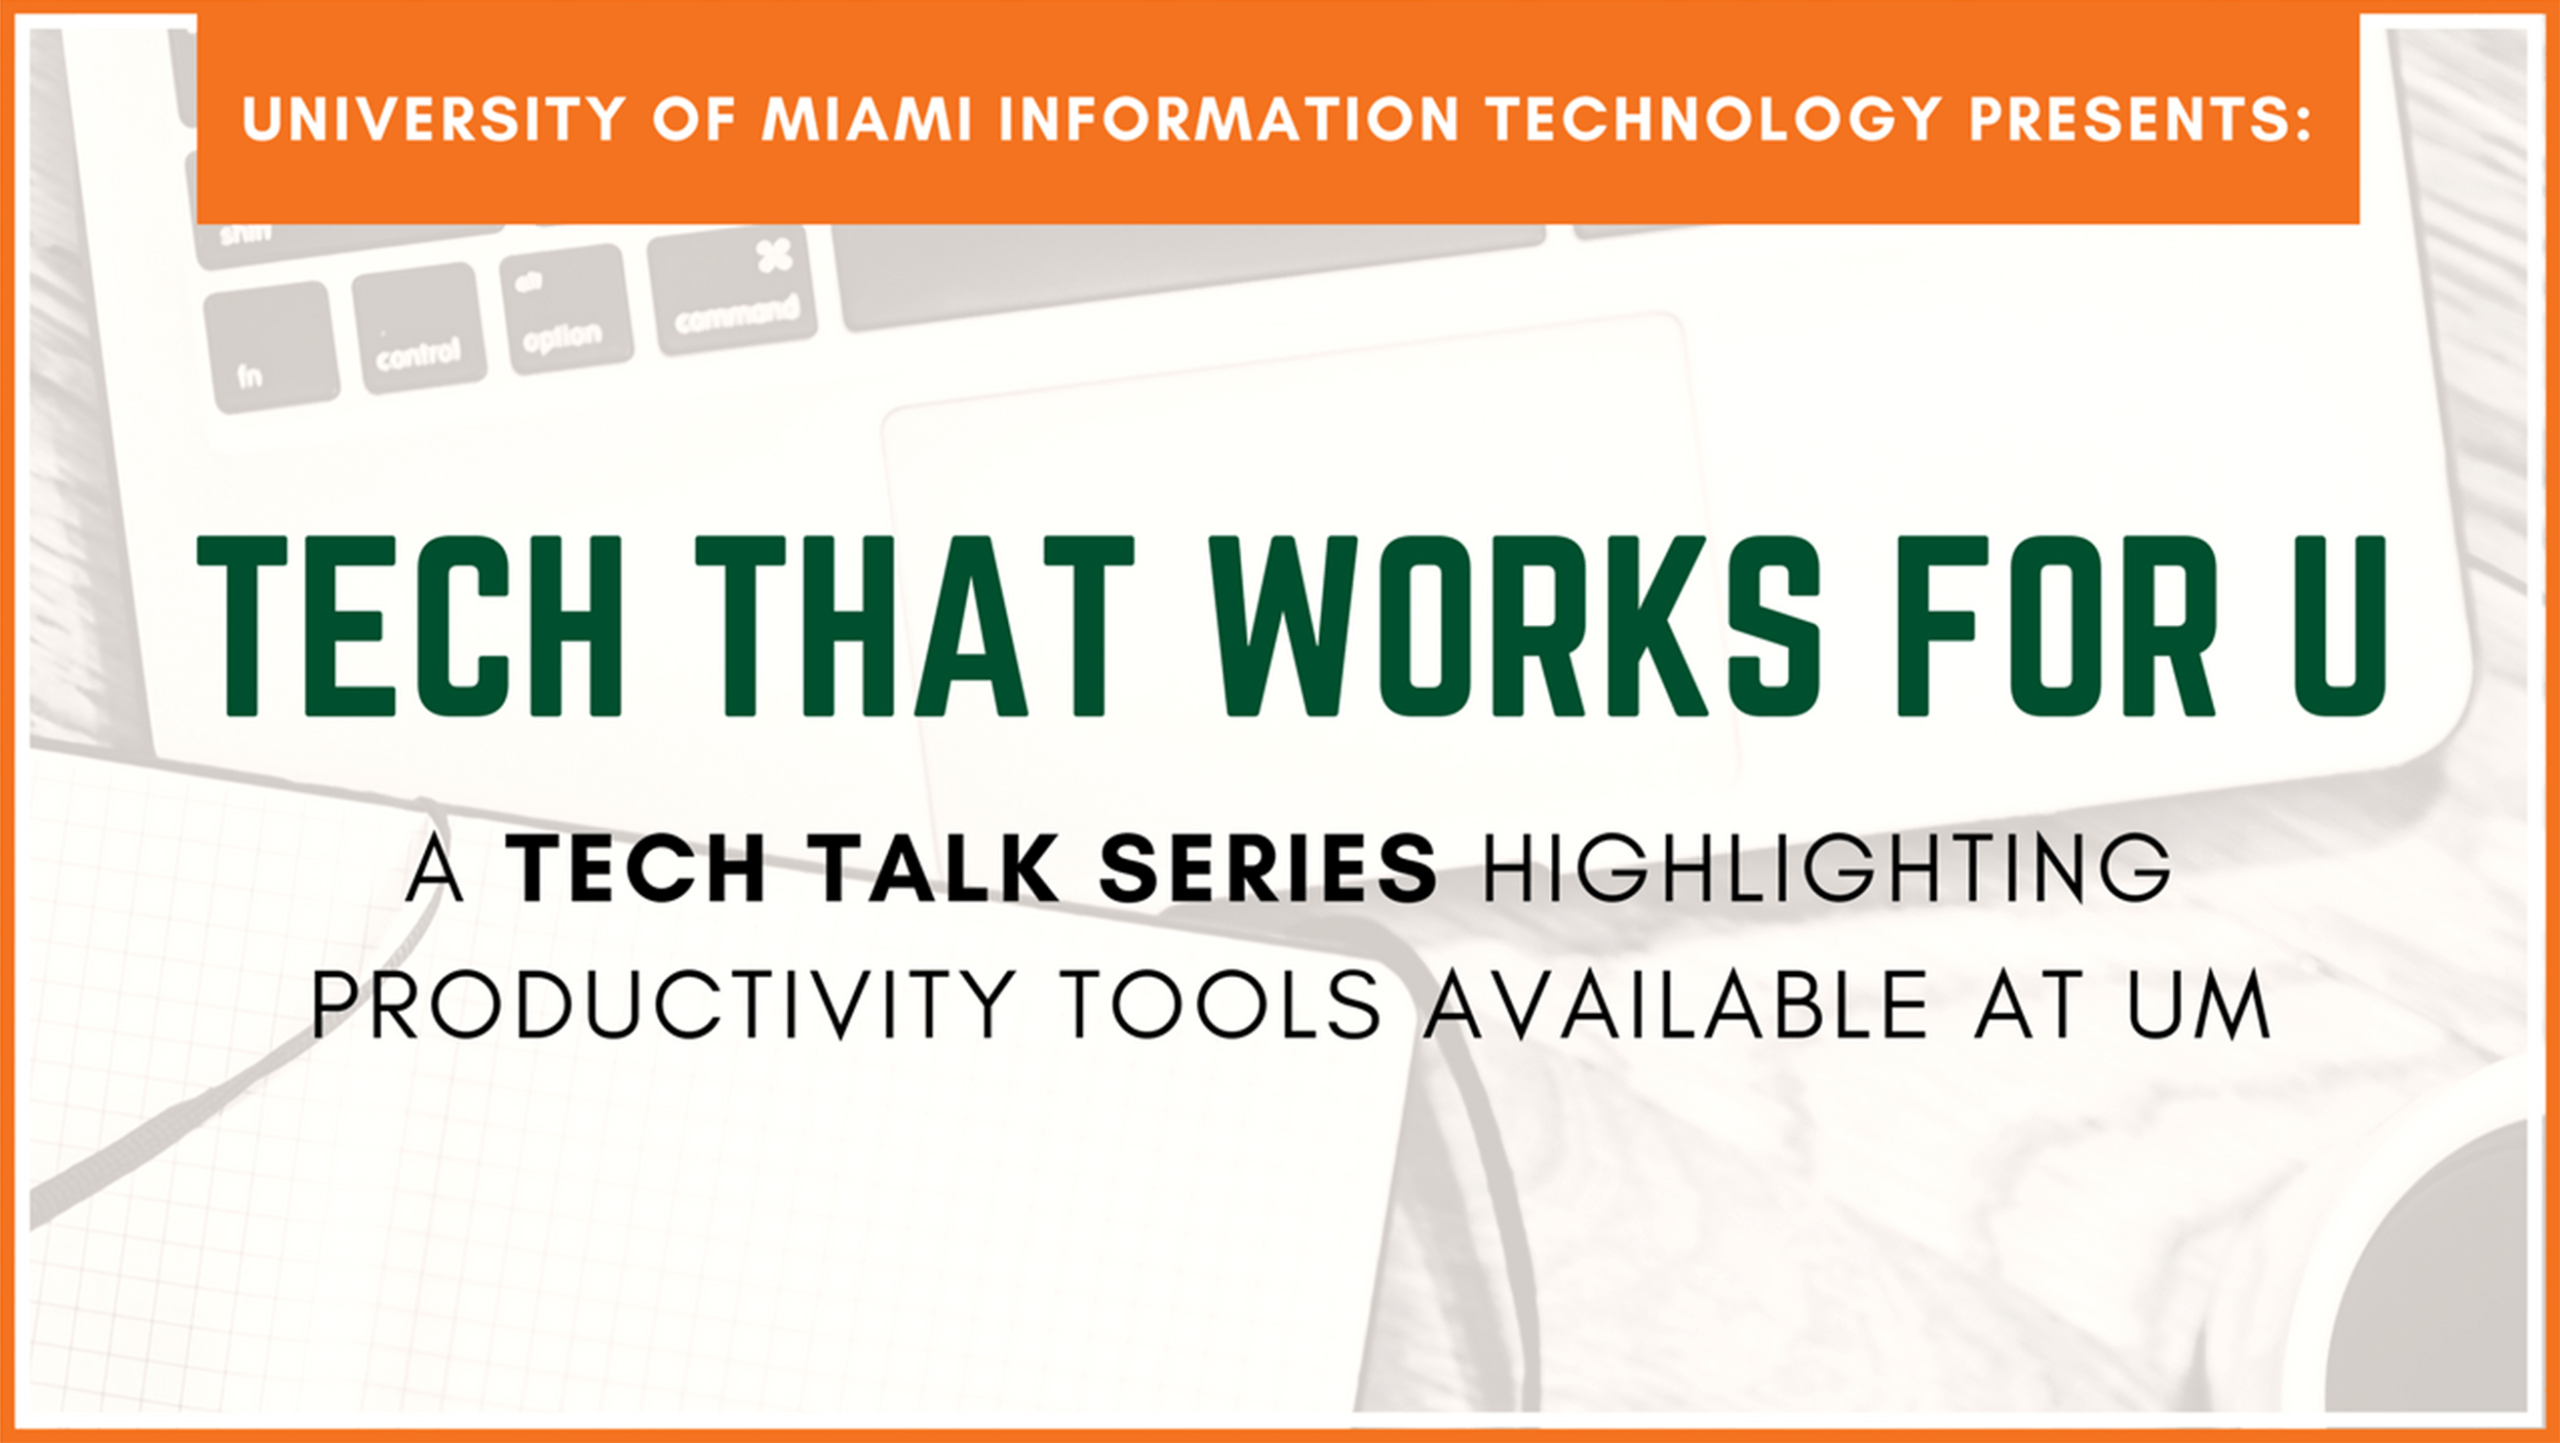 It News - Tech That Works For U | University Of Miami intended for University Of Miami Powerpoint Template